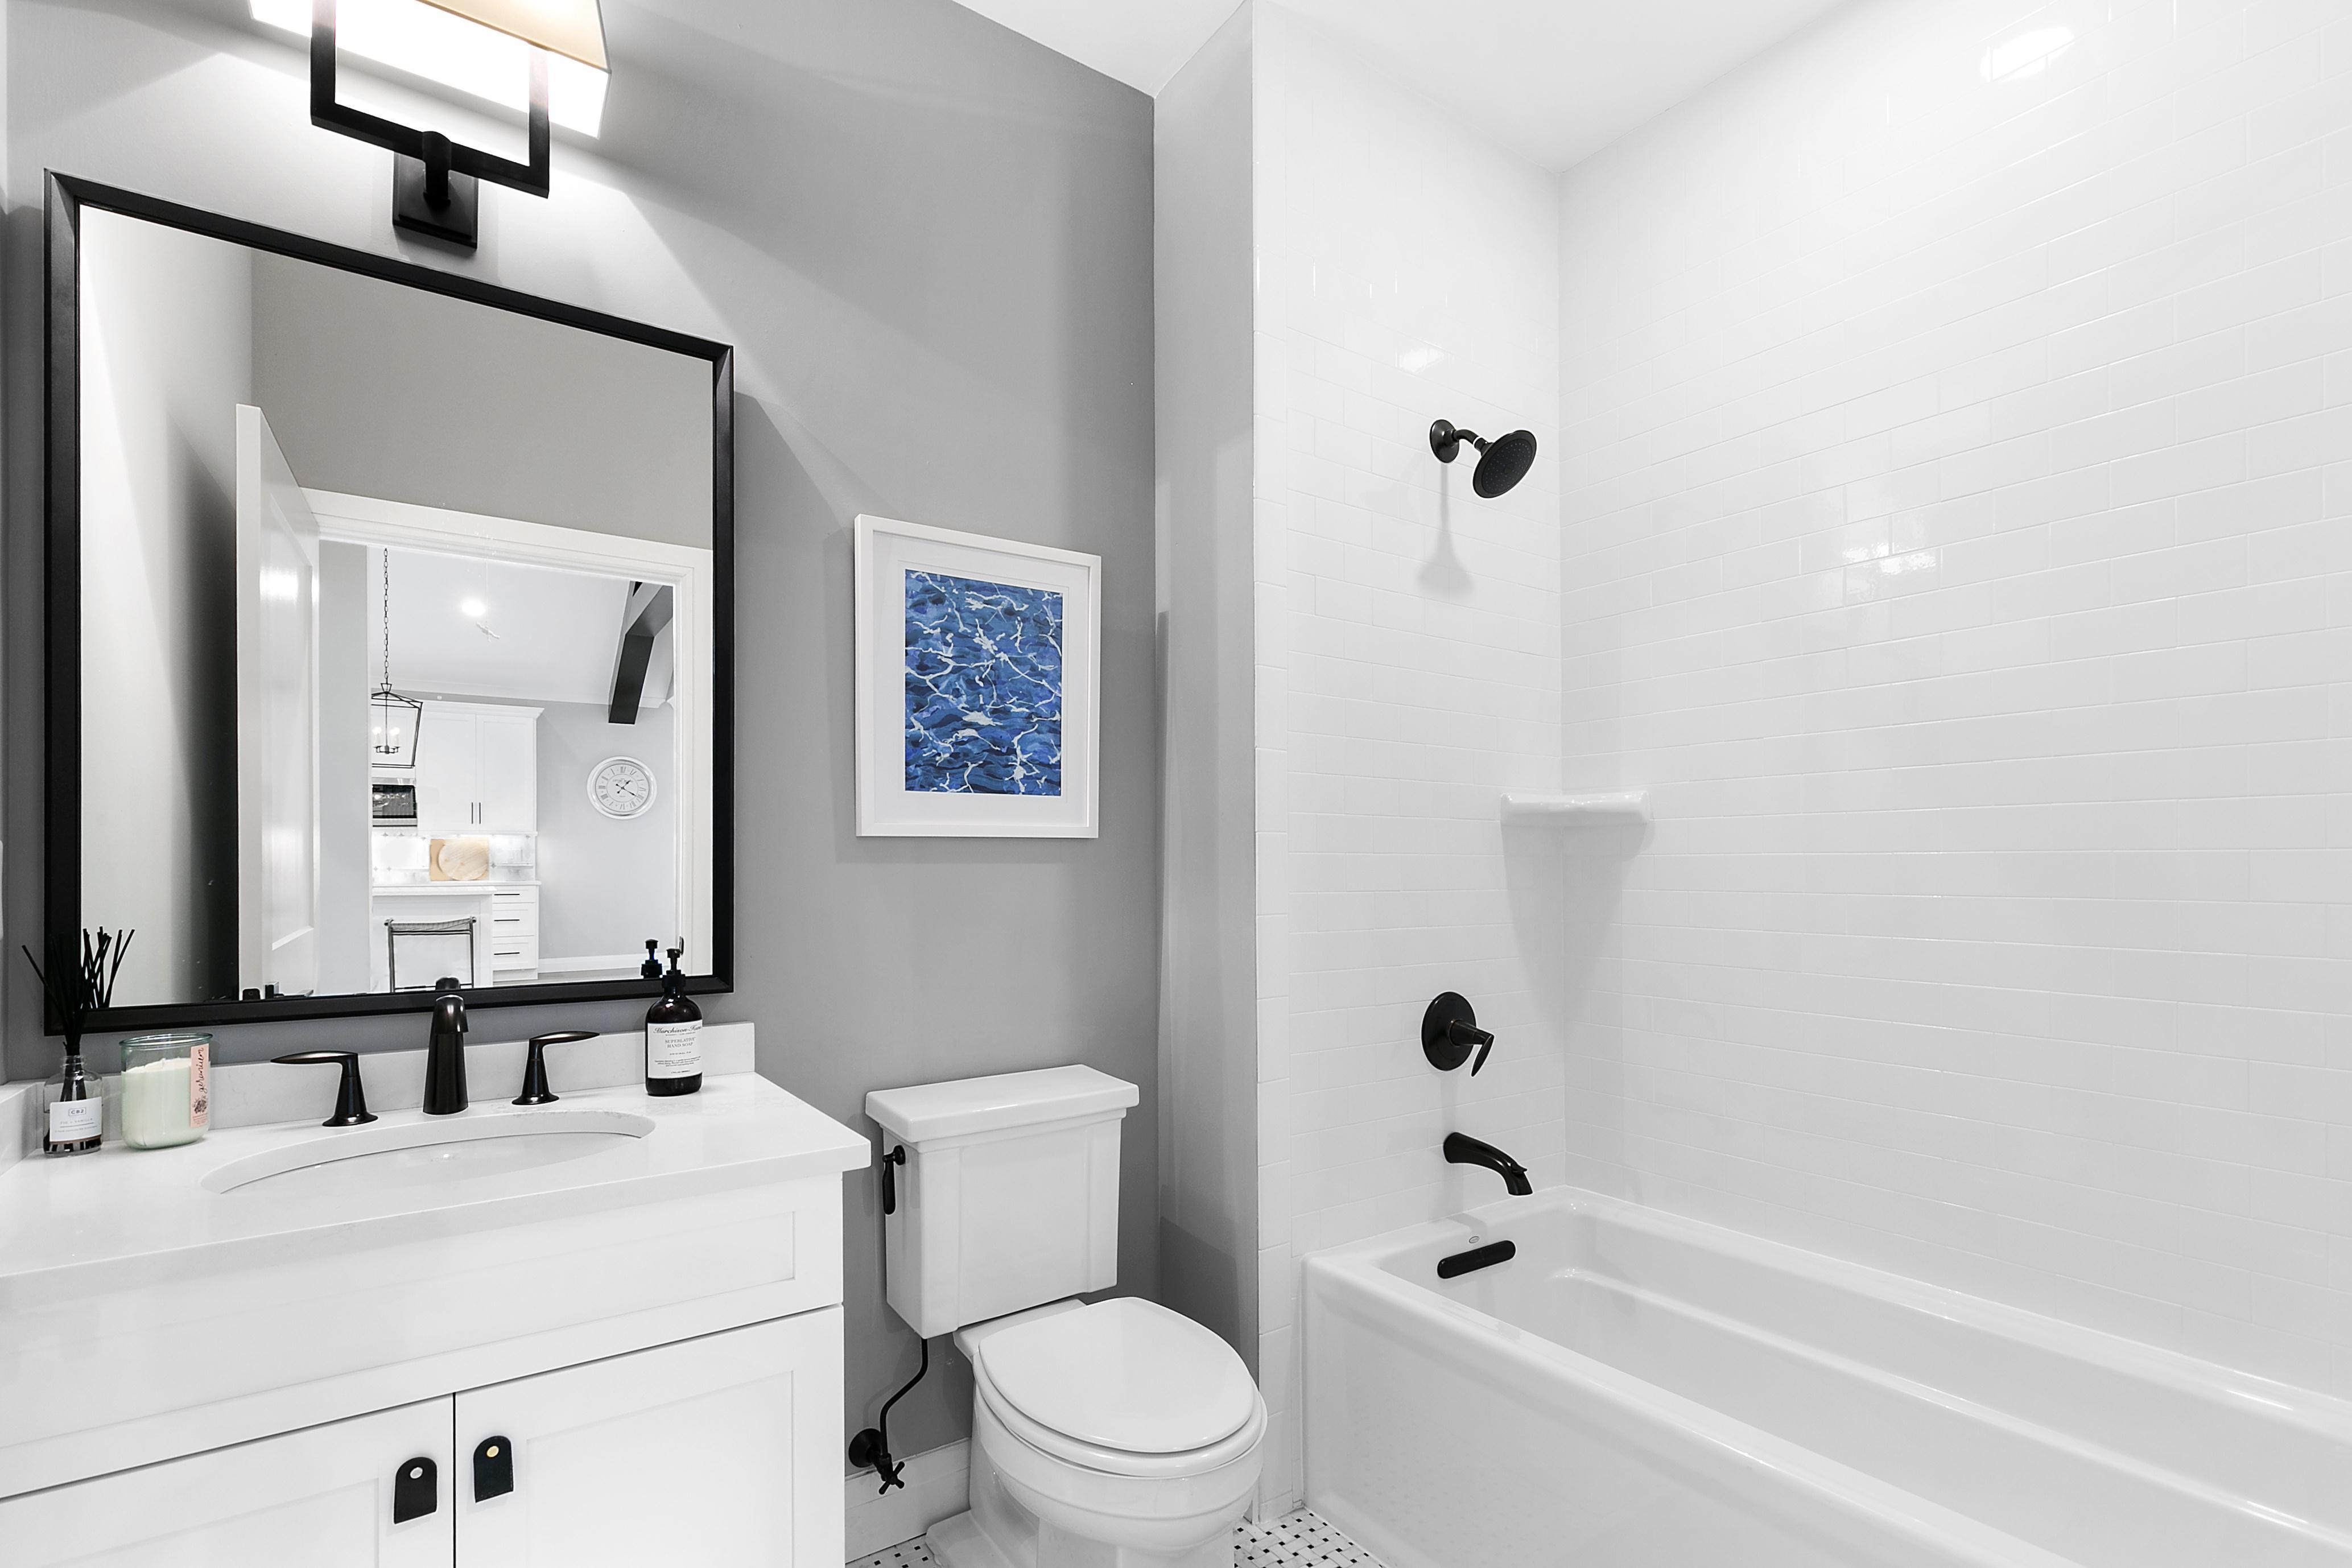 Bathroom featured in the Greenbrier By Beechwood Homes in Nassau-Suffolk, NY